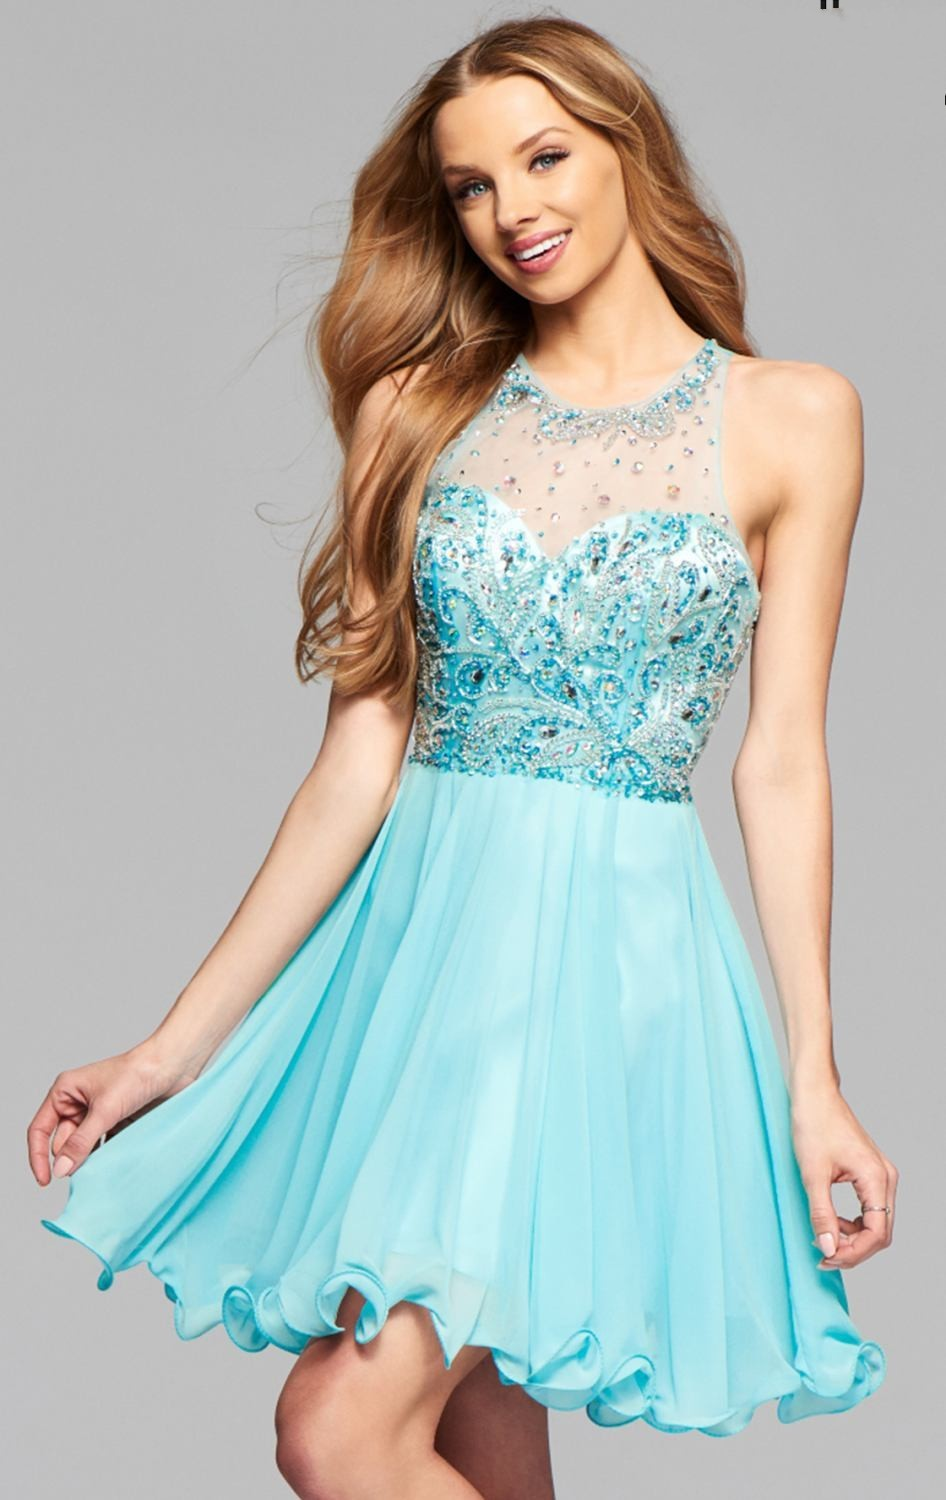 New Sky Blue Homecoming Dresses Short Prom Dresses Beaded High School University Party Cocktail